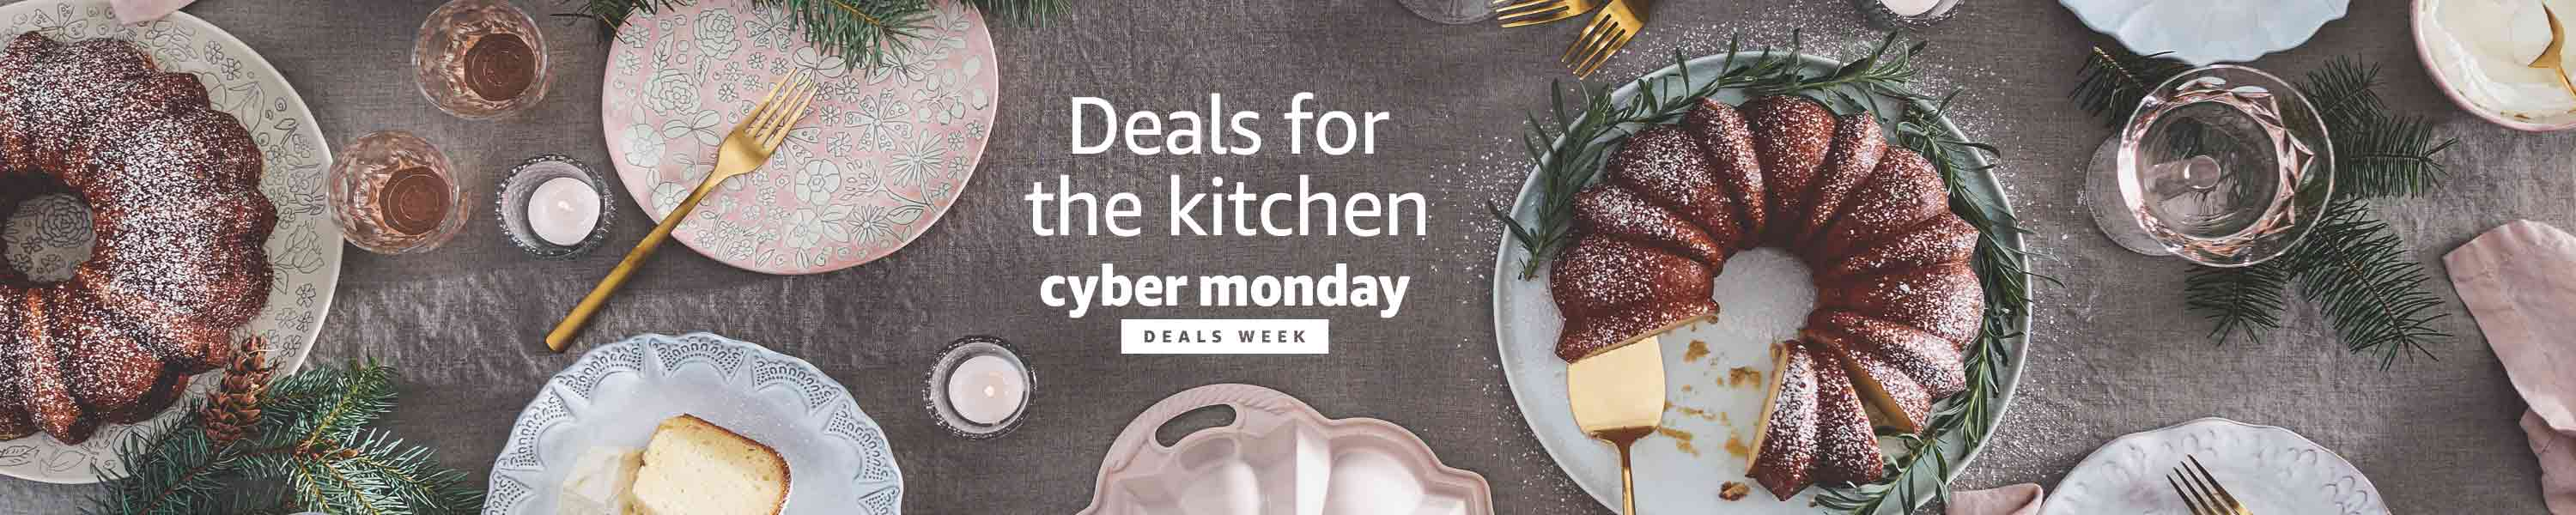 cyber monday kitchen deals